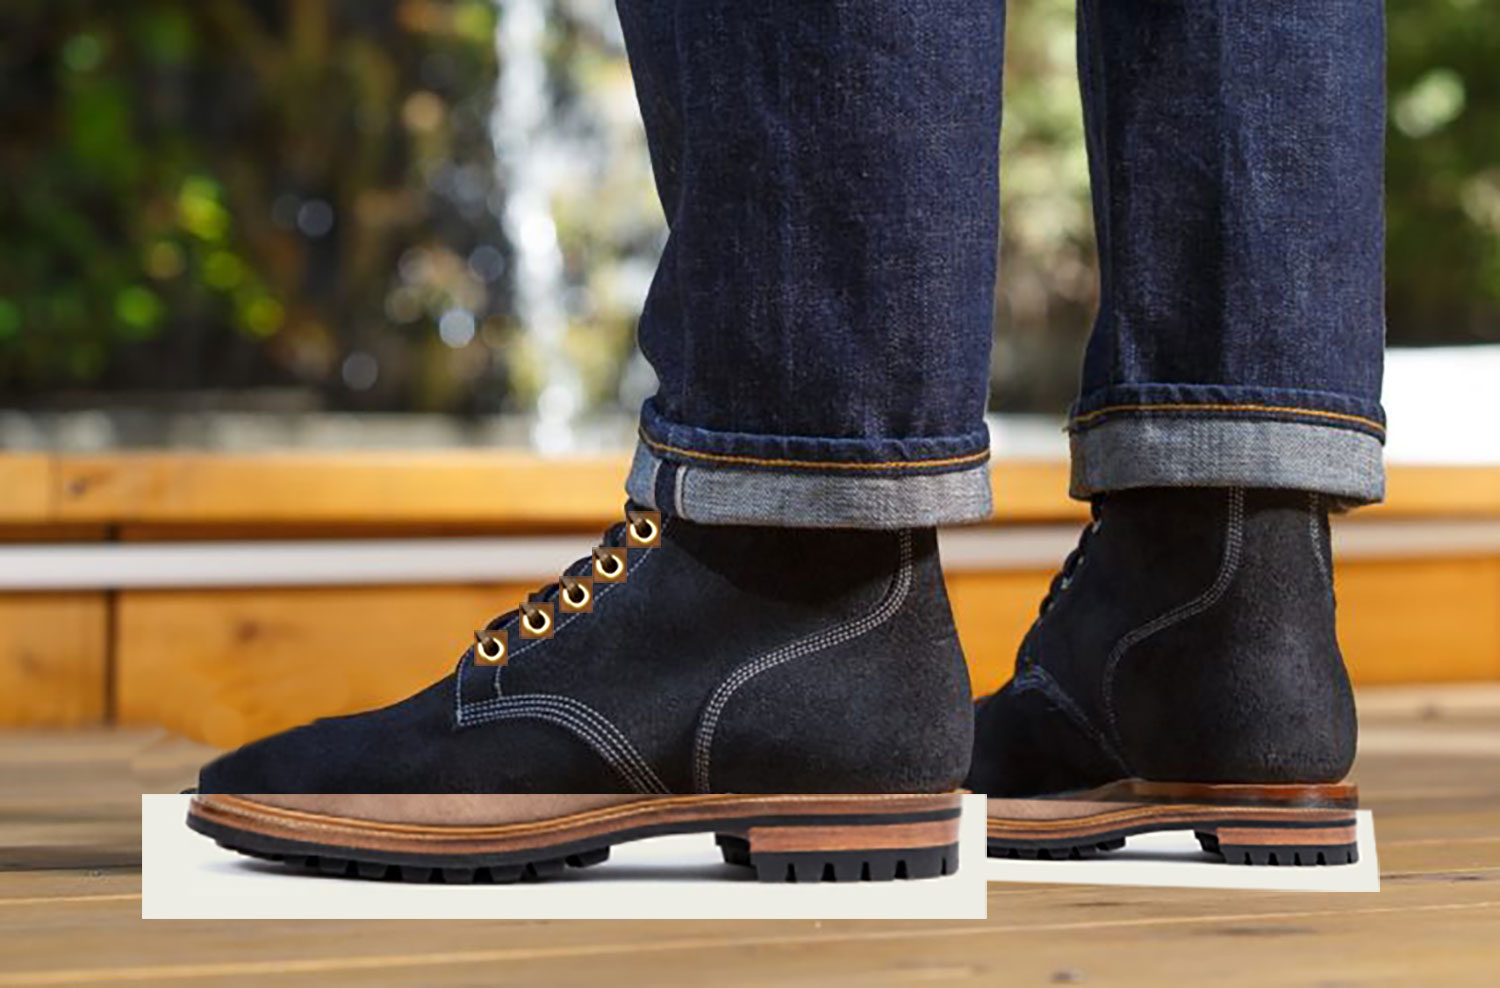 Withered Fig x Viberg Noontime Waterdown Boondocker, Gotten Em from Stitchdown Through Bots